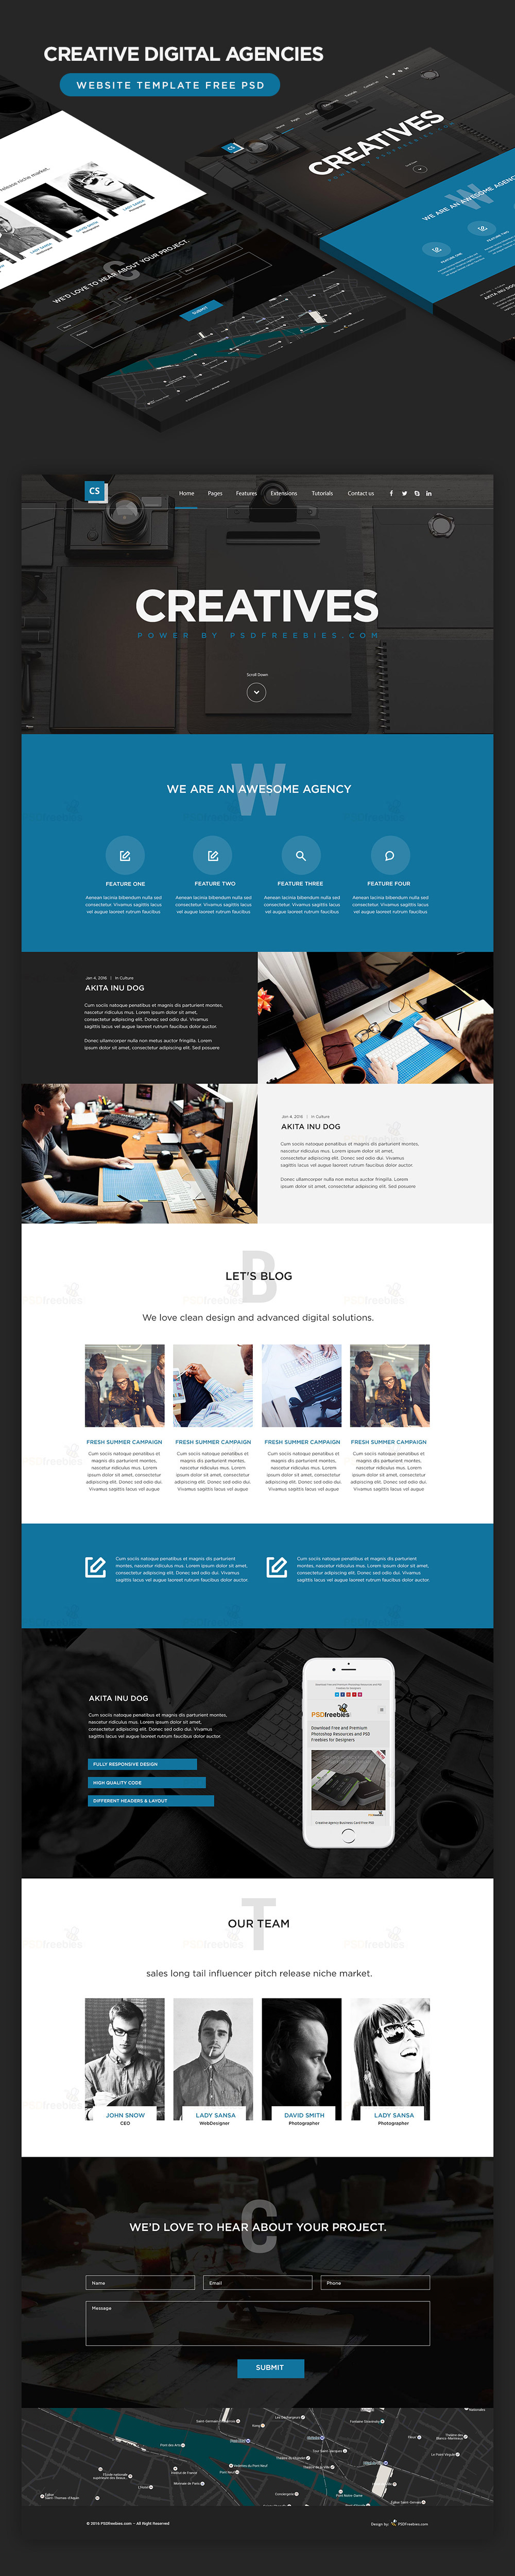 High quality 50 free corporate and business web templates psd creative digital agencies website template free psd download cheaphphosting Images